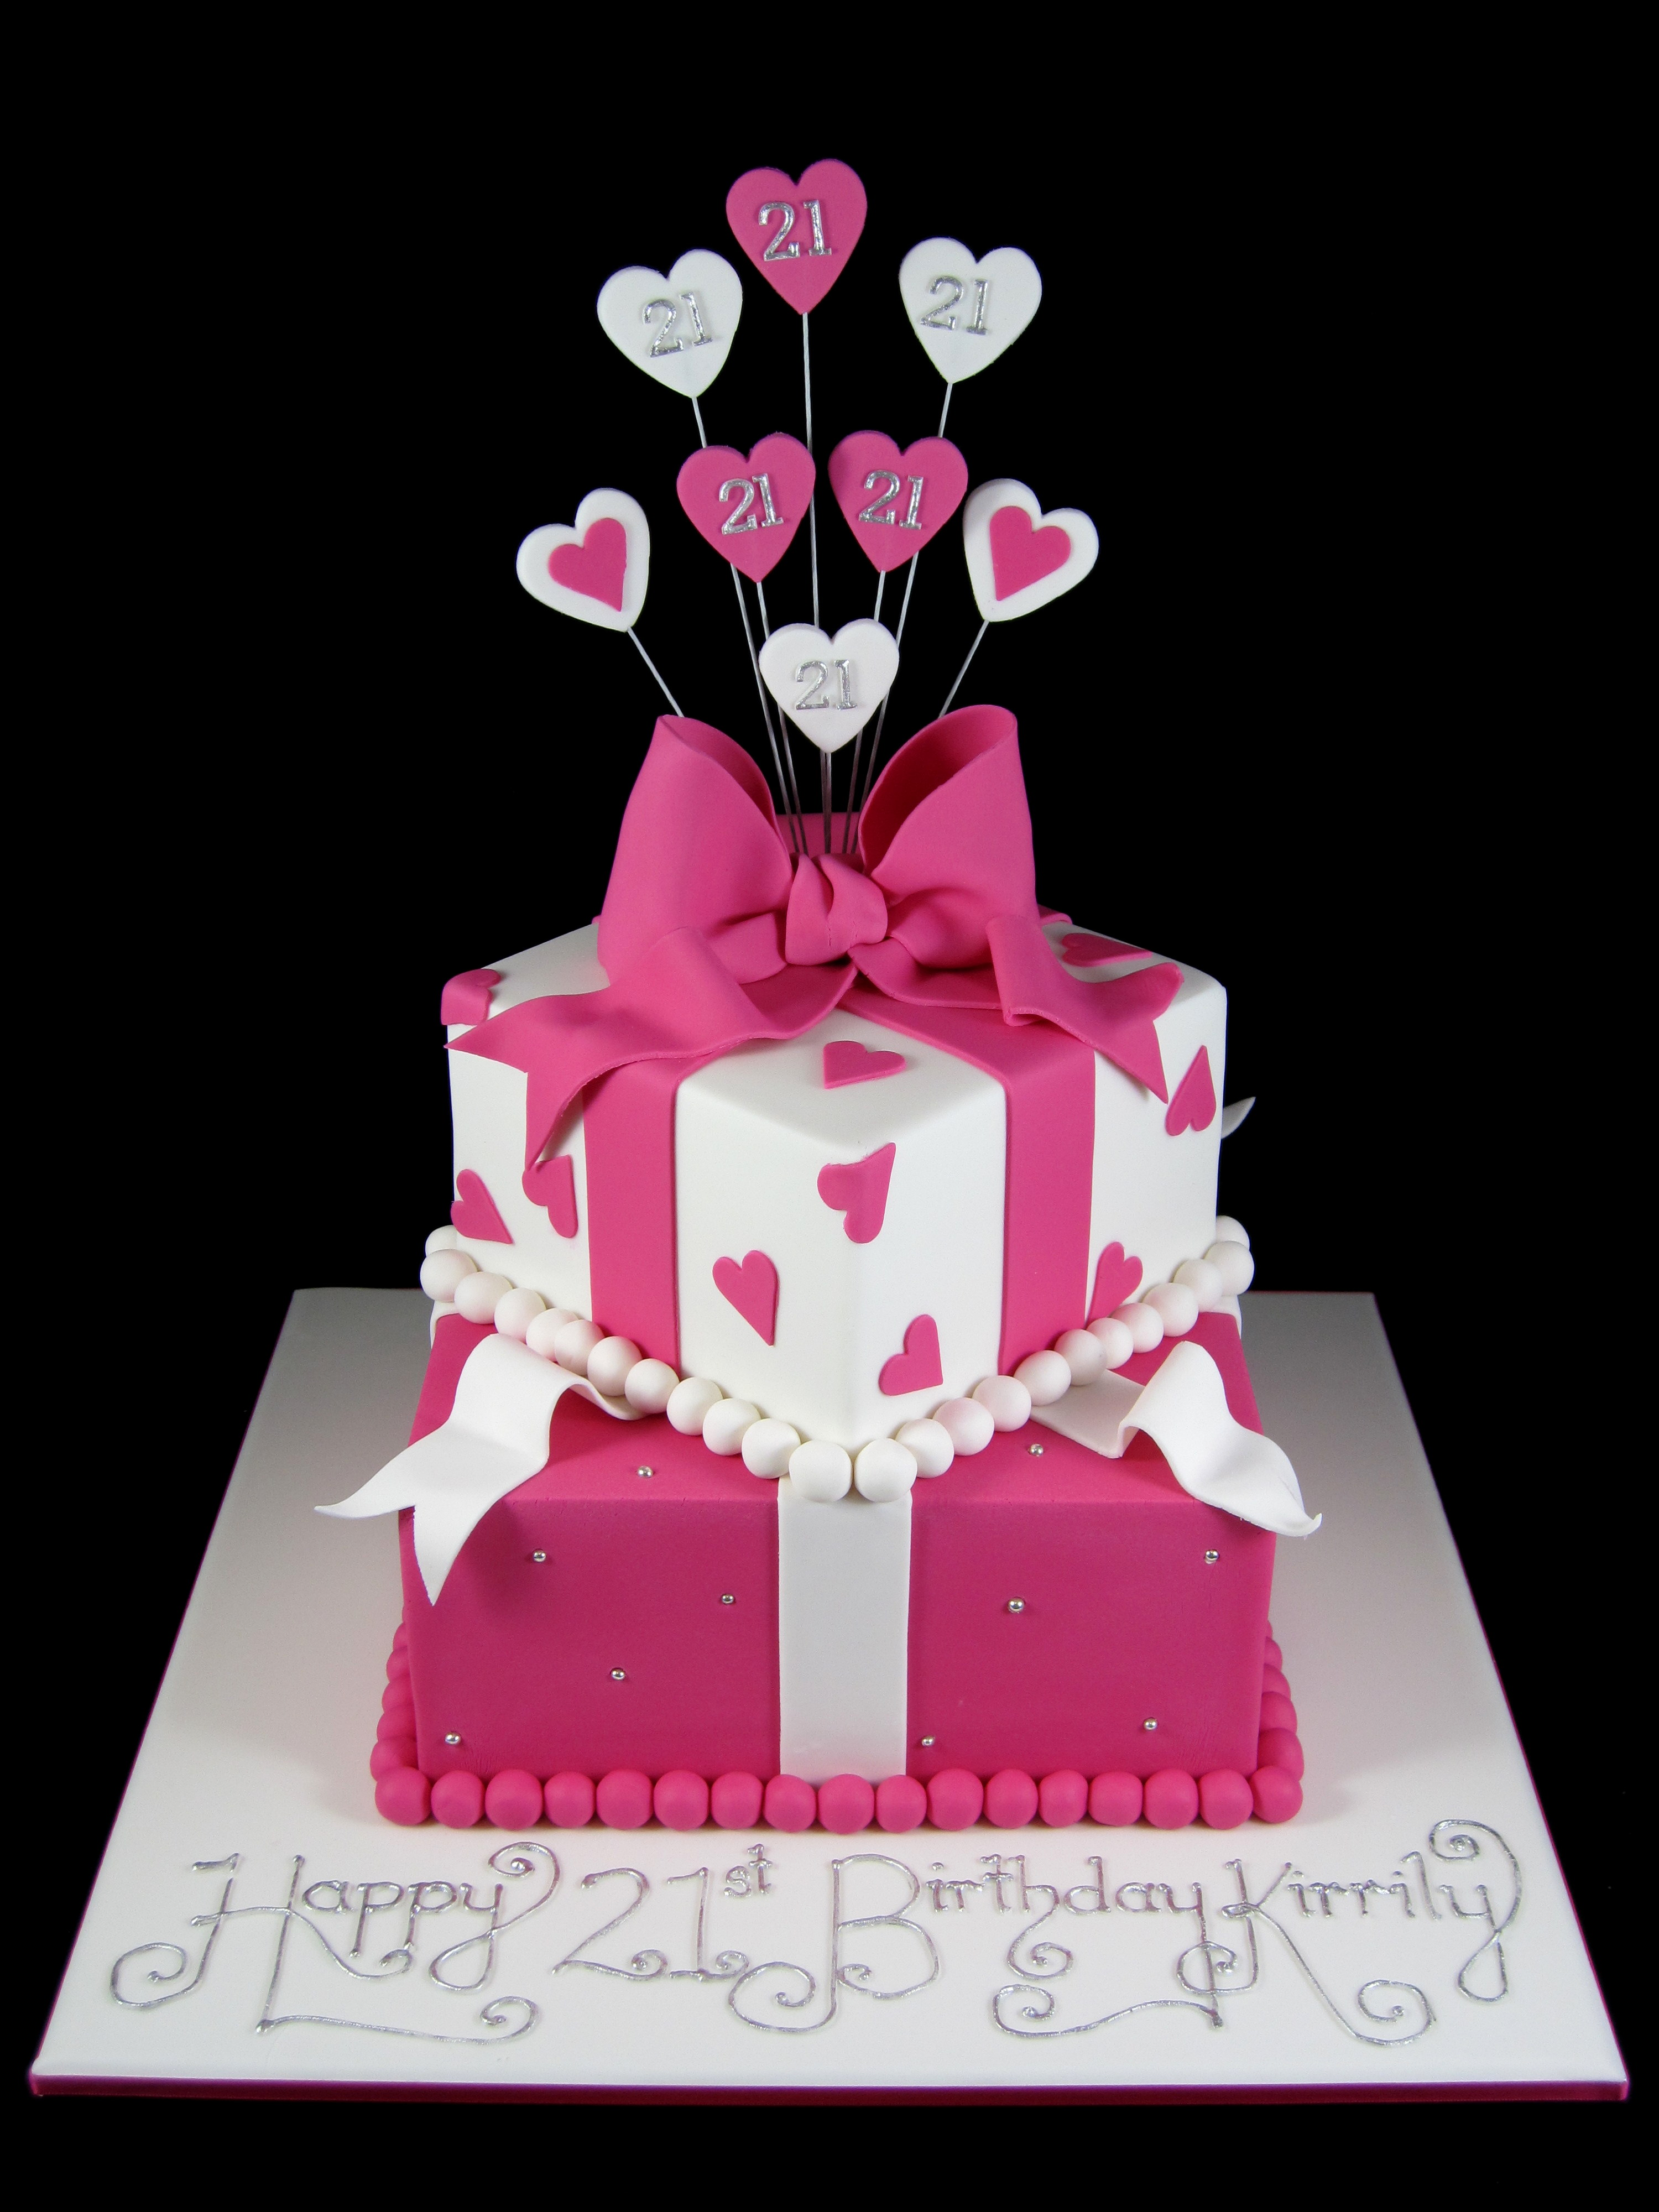 Outstanding 21St Birthday Cake Idea Inspired By Michelle Personalised Birthday Cards Paralily Jamesorg